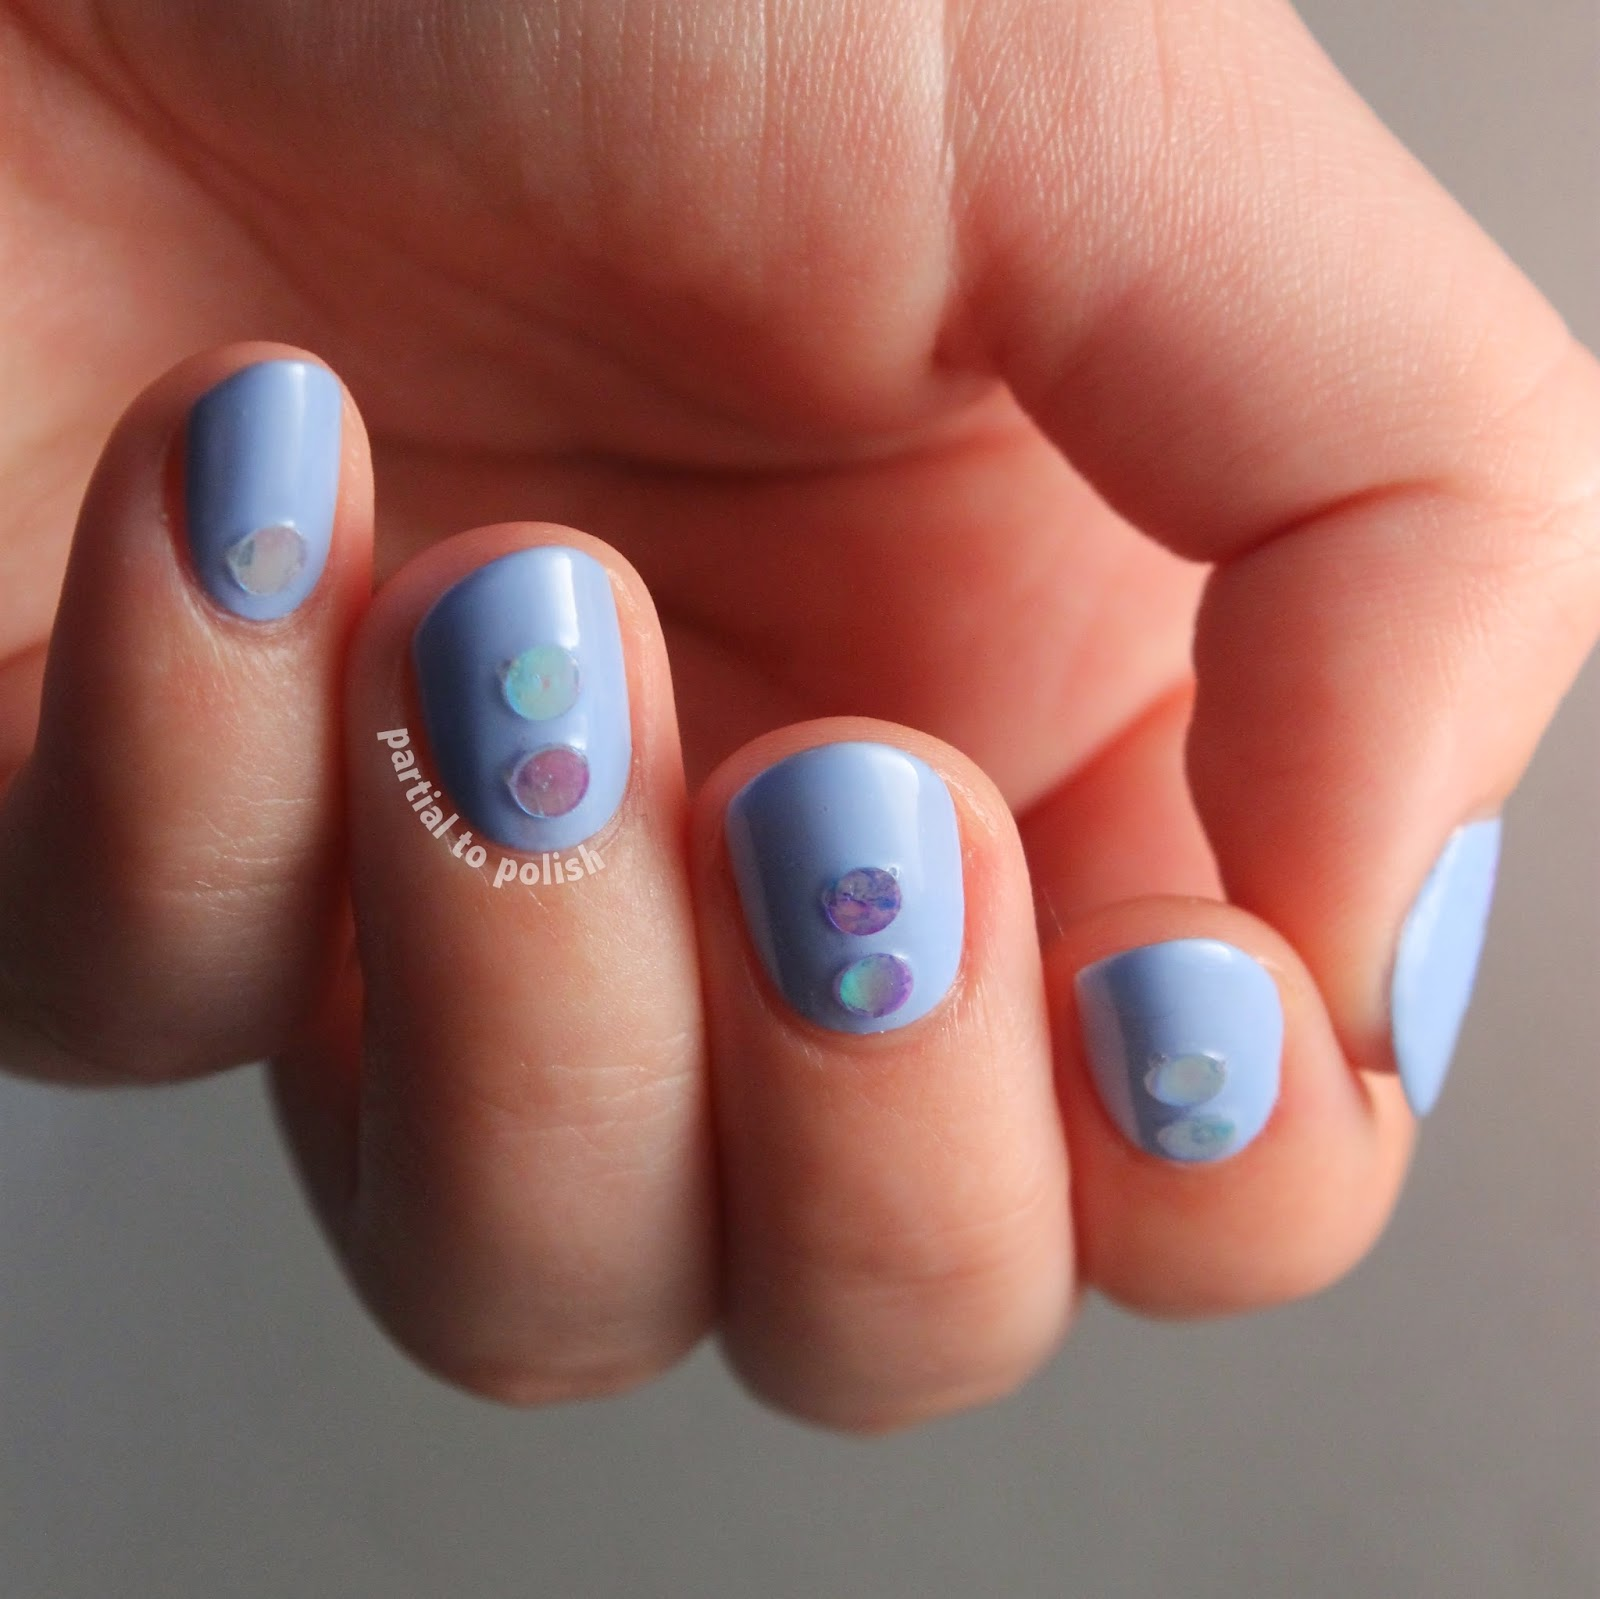 Born Pretty Store Glitter Set Review Featuring Light Blue Iridescent Glitter Nails